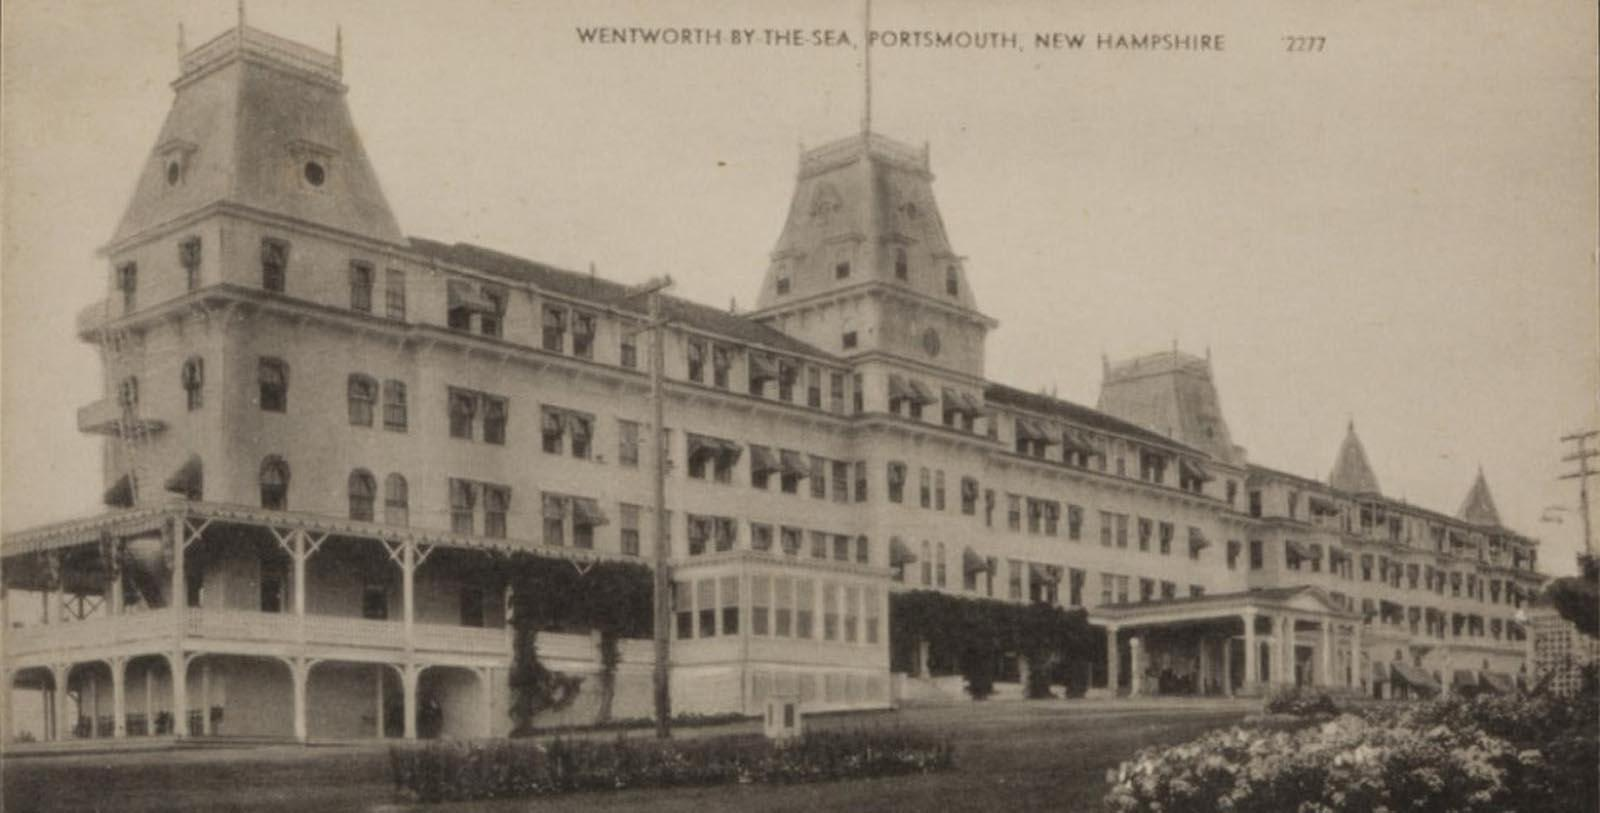 Image of Historic Exterior, Wentworth by the Sea, New Castle, New Hampshire, 1874, Member of Historic Hotels of America, Discover